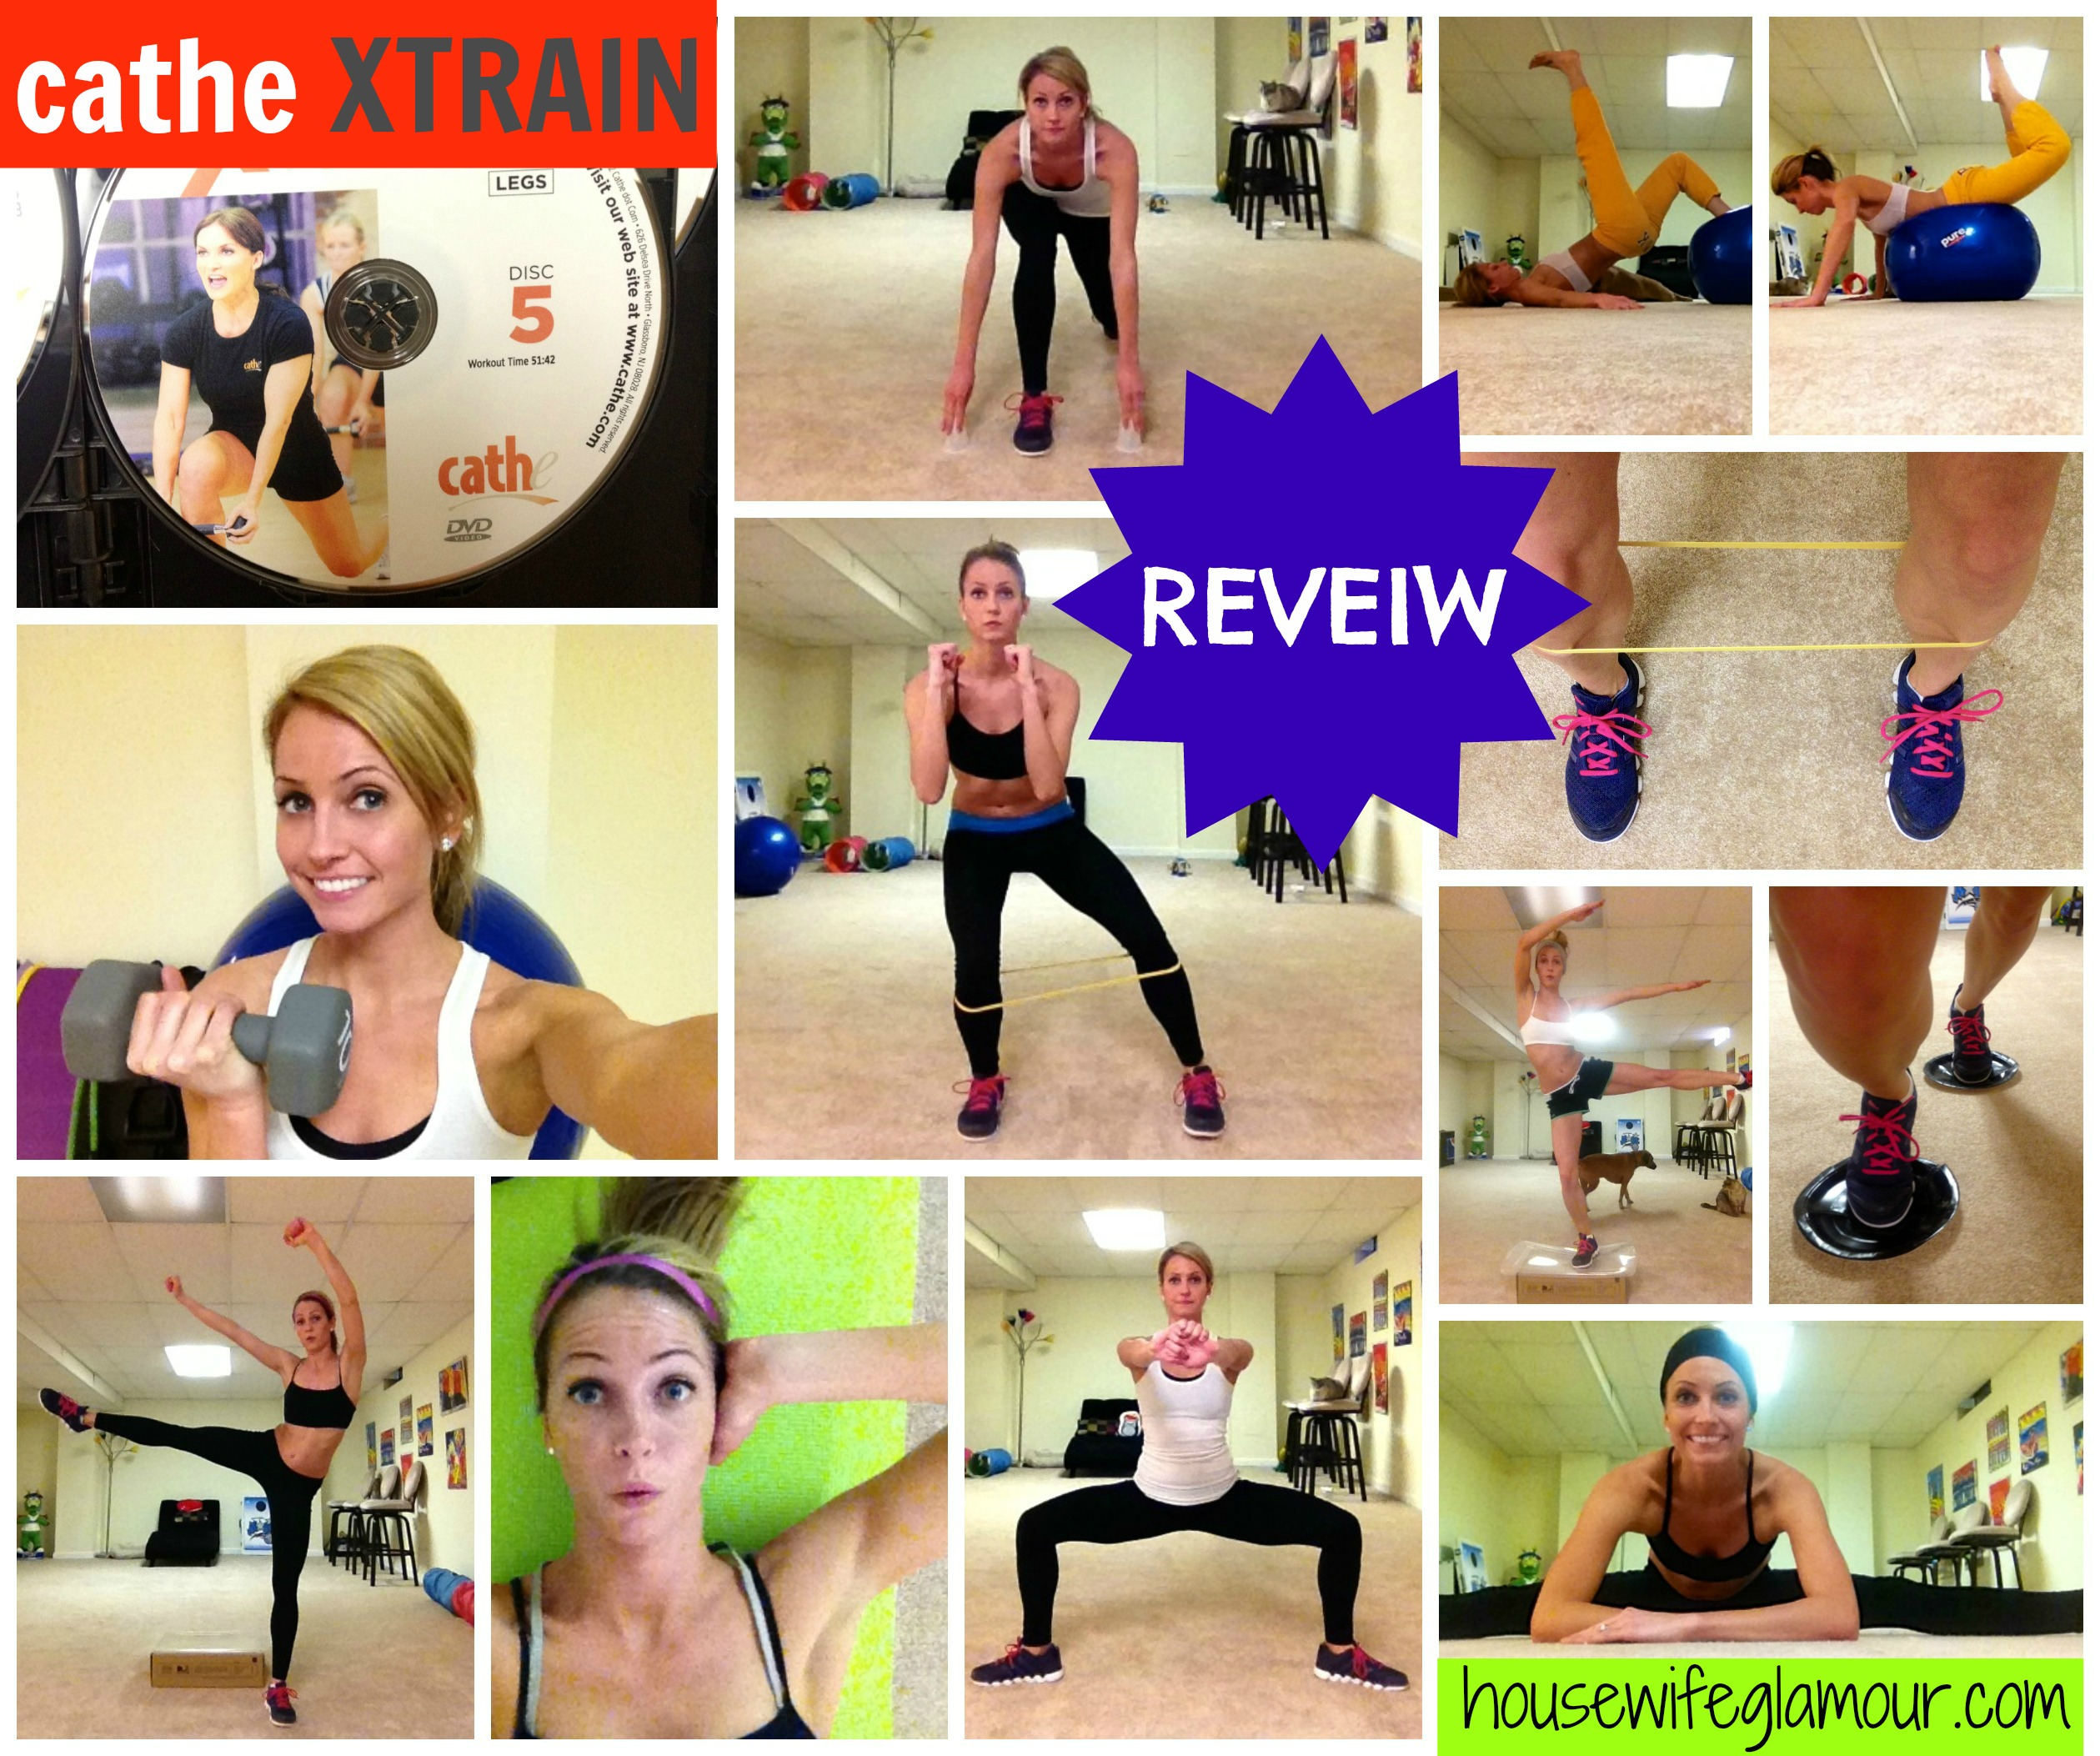 cathe XTrain Review cover